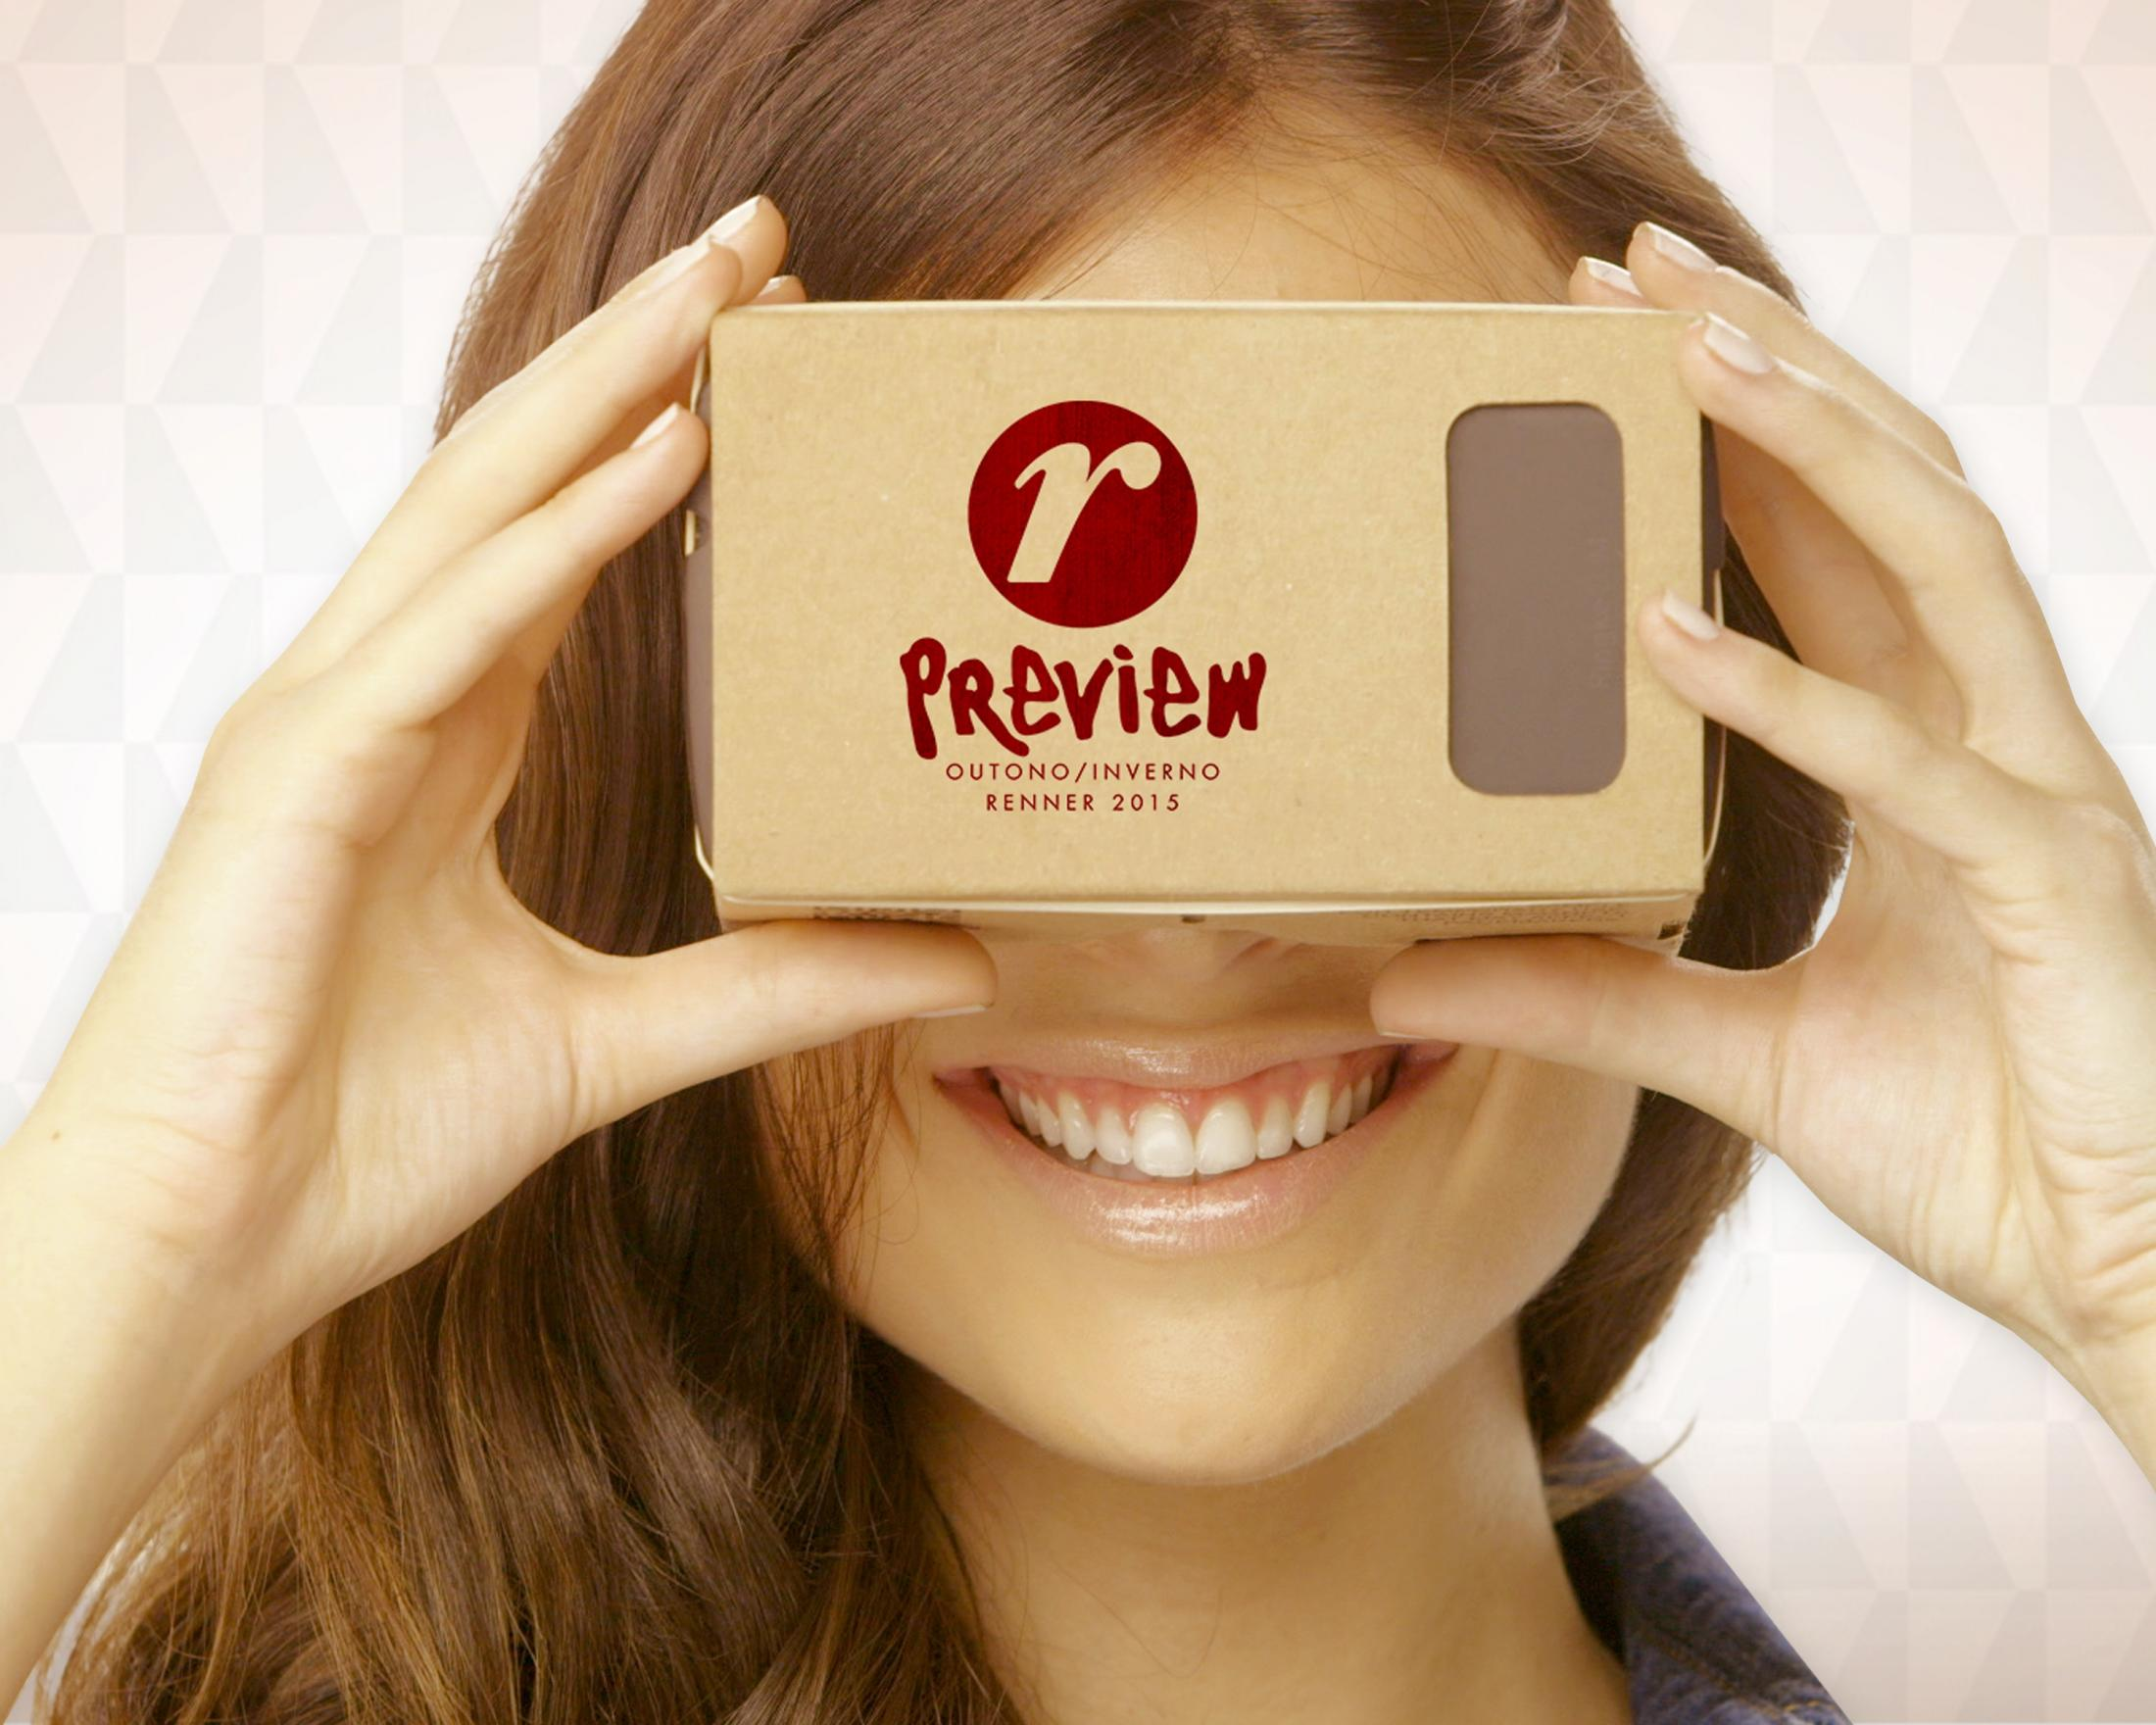 Thumbnail for Renner Winter Collection Preview Event with Google Cardboard